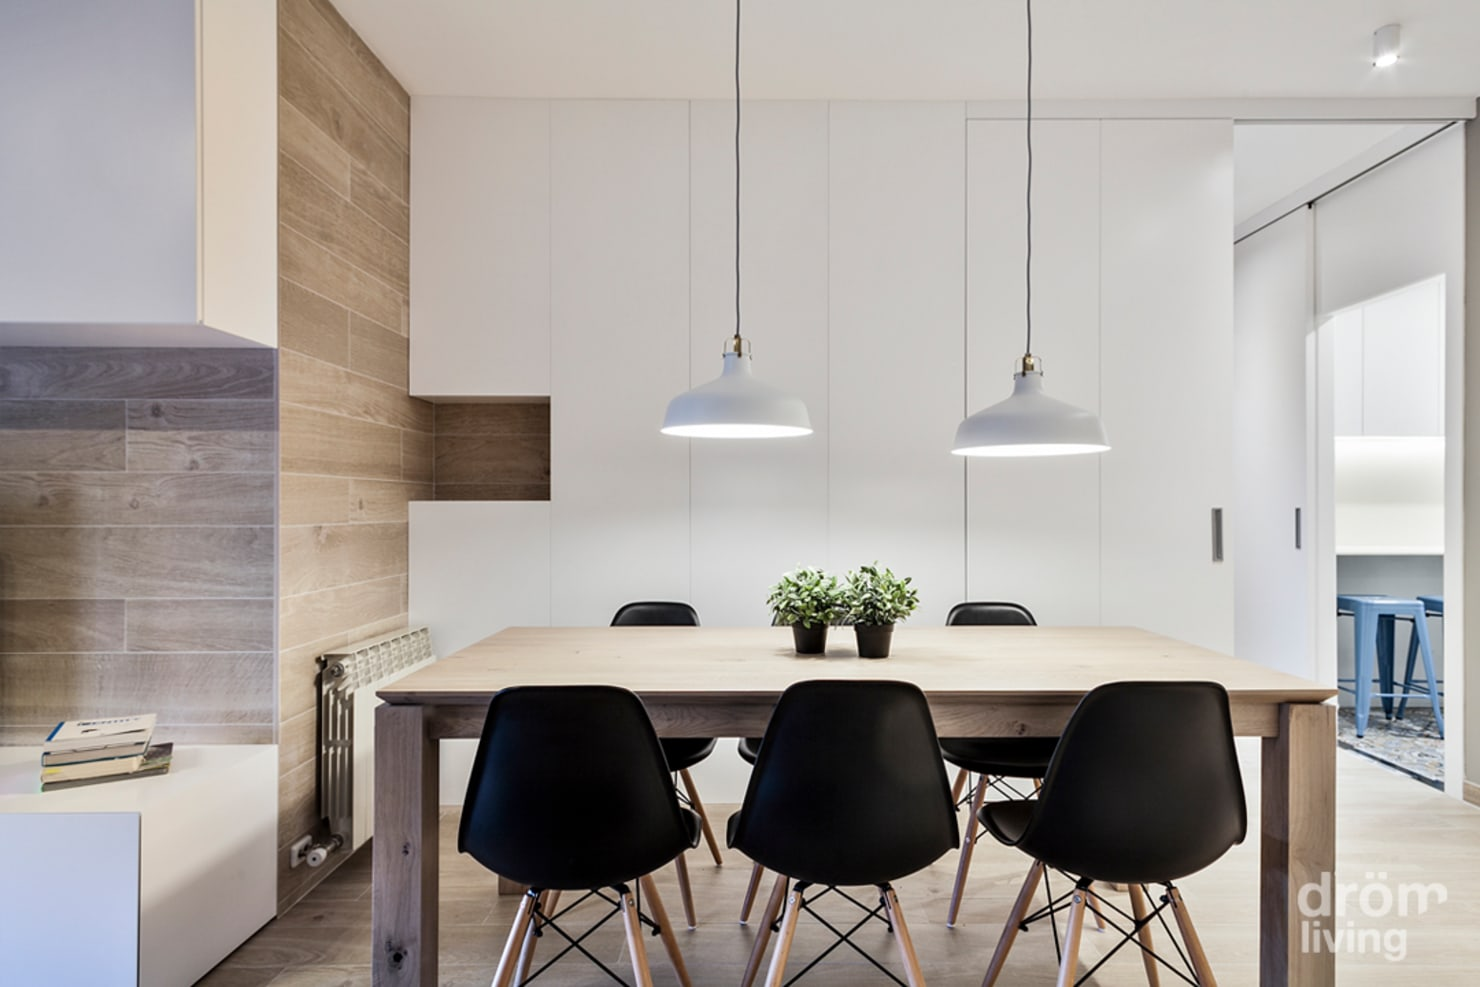 How do I choose chairs to go with my dining table?